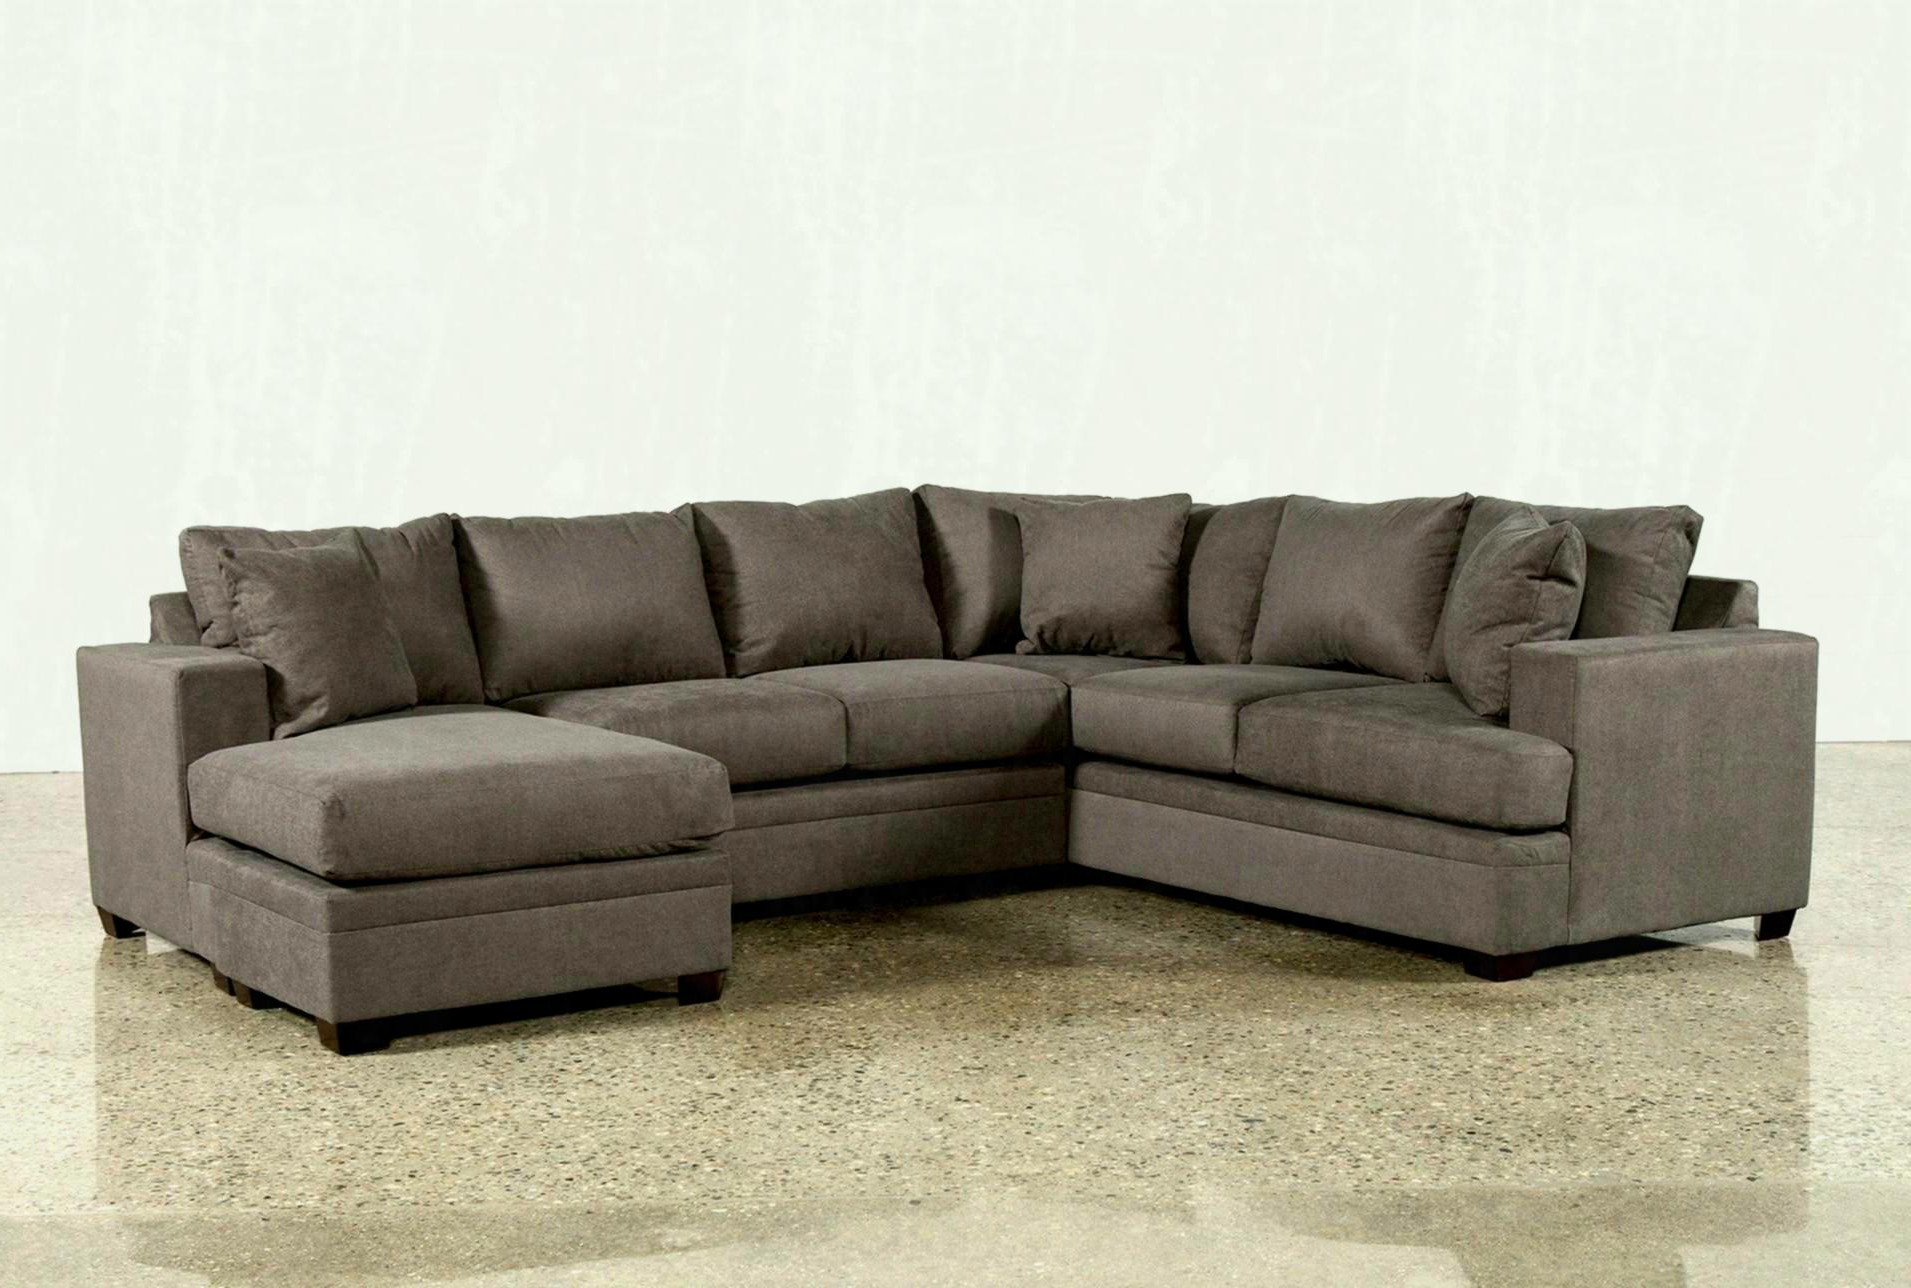 Widely Used Lucy Grey 2 Piece Sectionals With Laf Chaise For Added To Cart Lucy Dark Grey Piece Sectional W Raf Chaise Living (View 12 of 20)